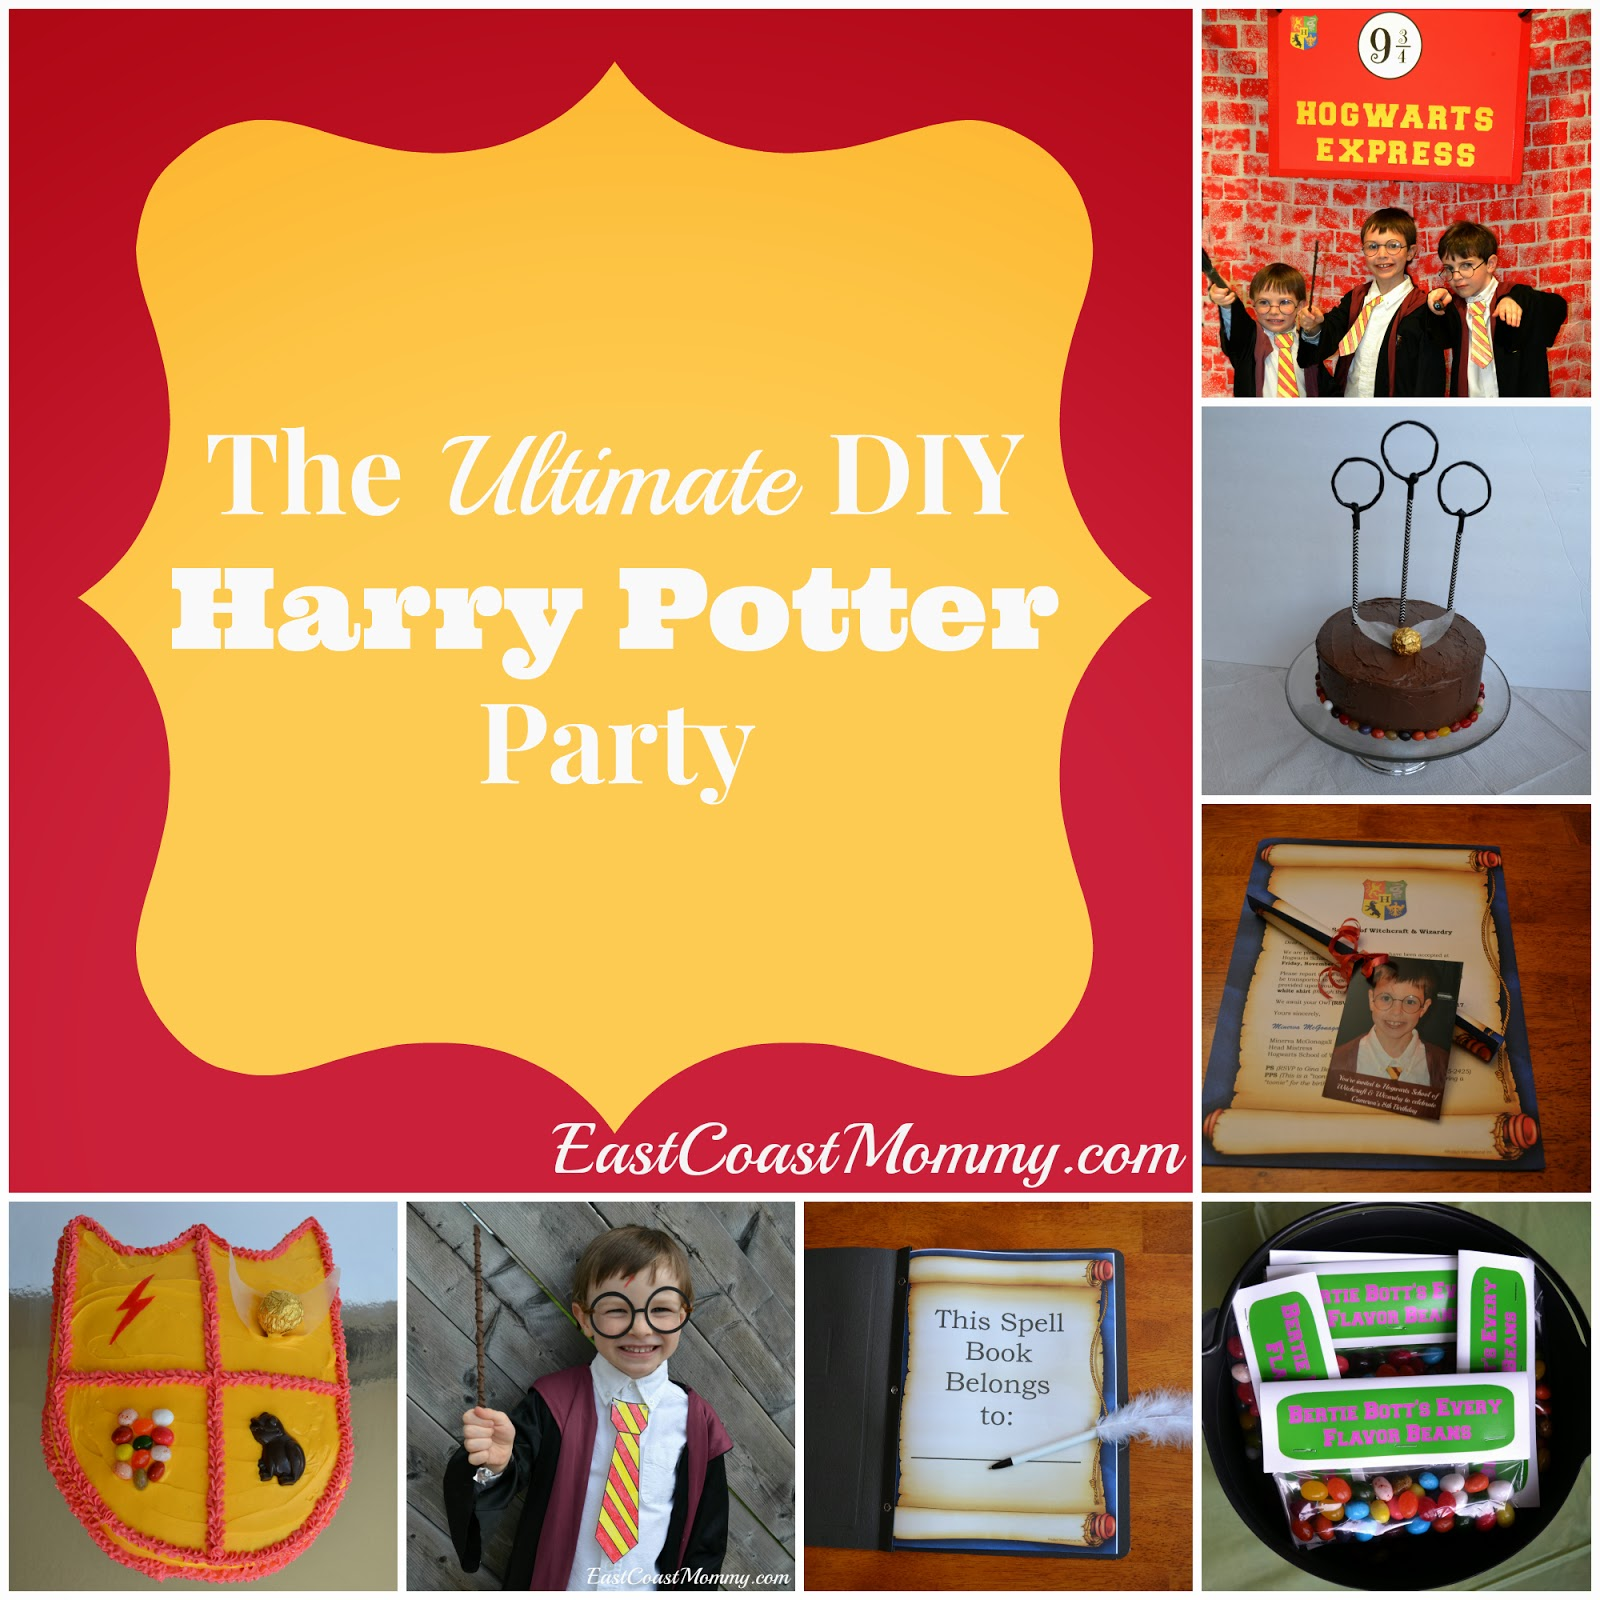 East Coast Mommy: The Ultimate DIY Harry Potter Party